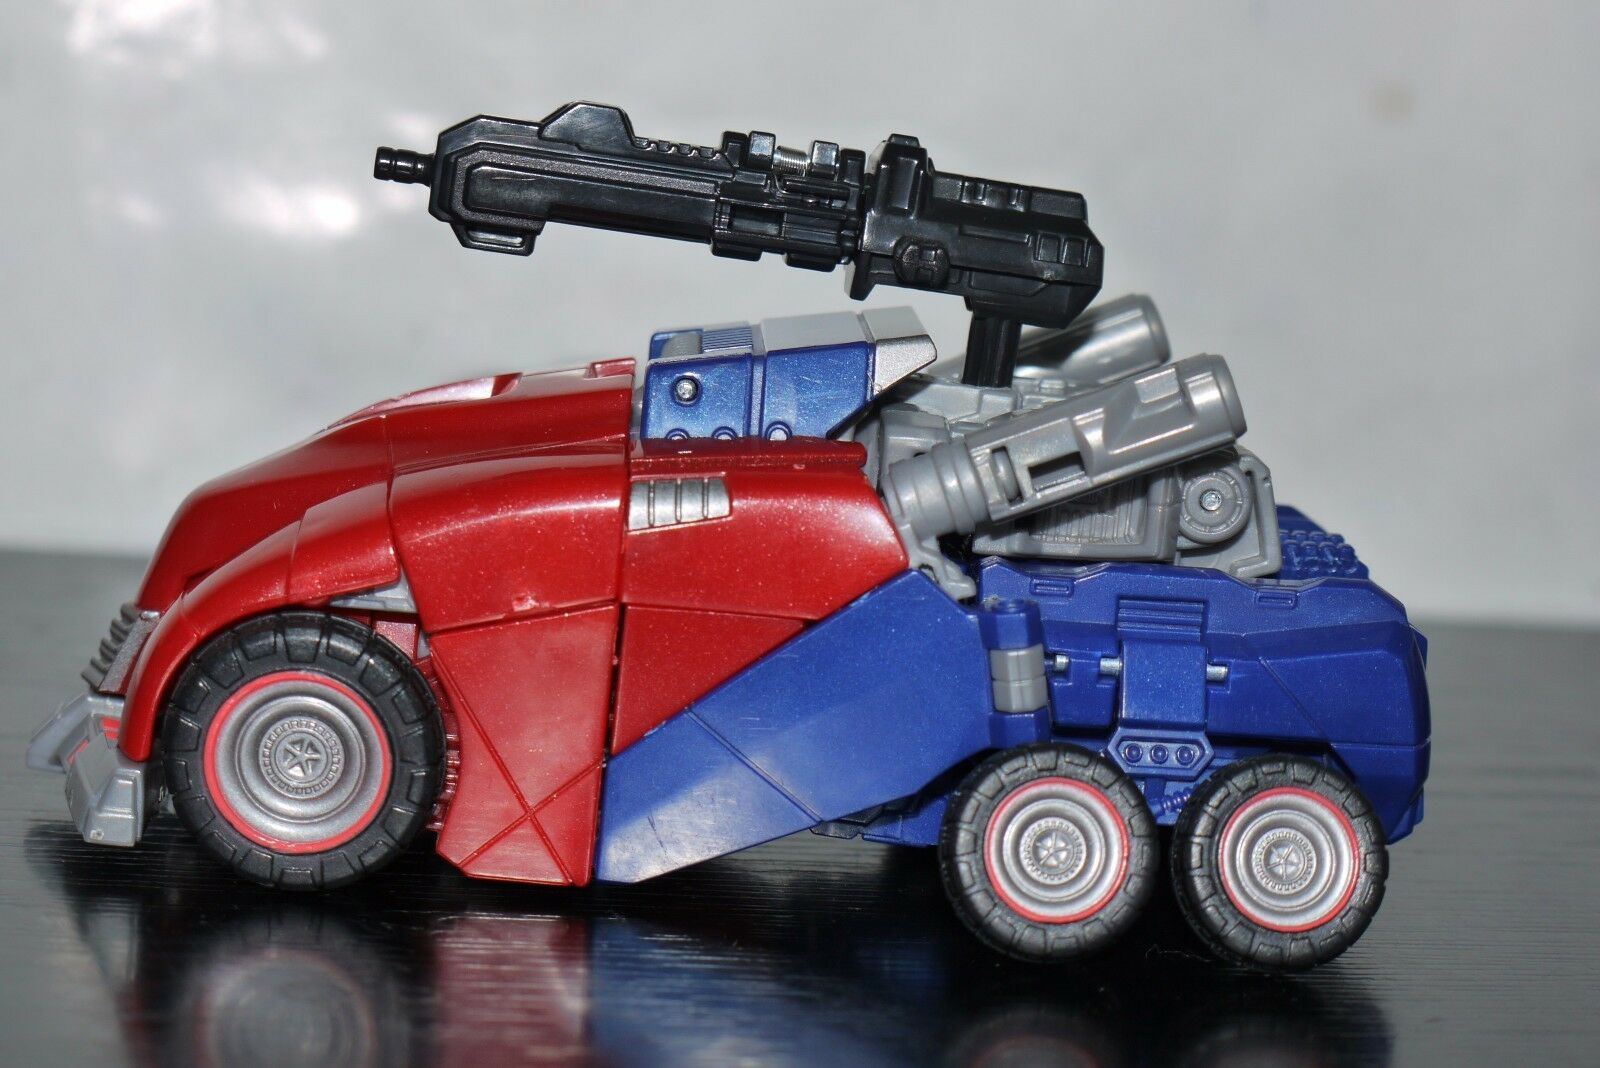 Transformers Generations Deluxe Class Cybertronian Optimus Prime FIGURE